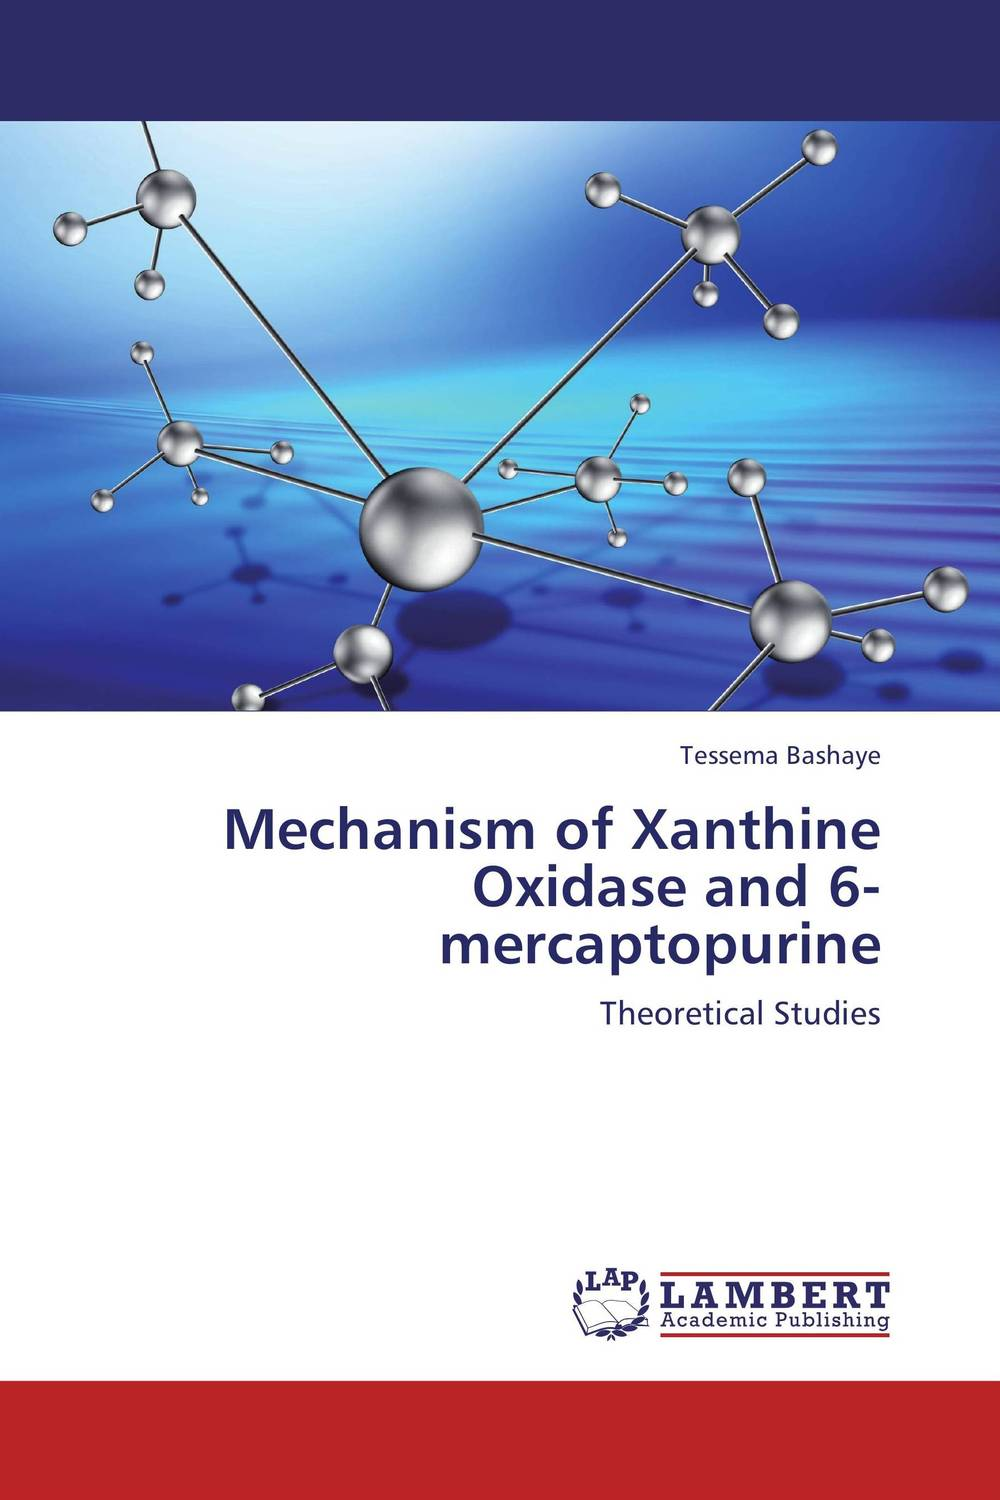 Mechanism of Xanthine Oxidase and 6-mercaptopurine evaluation of pile failure mechanism by piv method